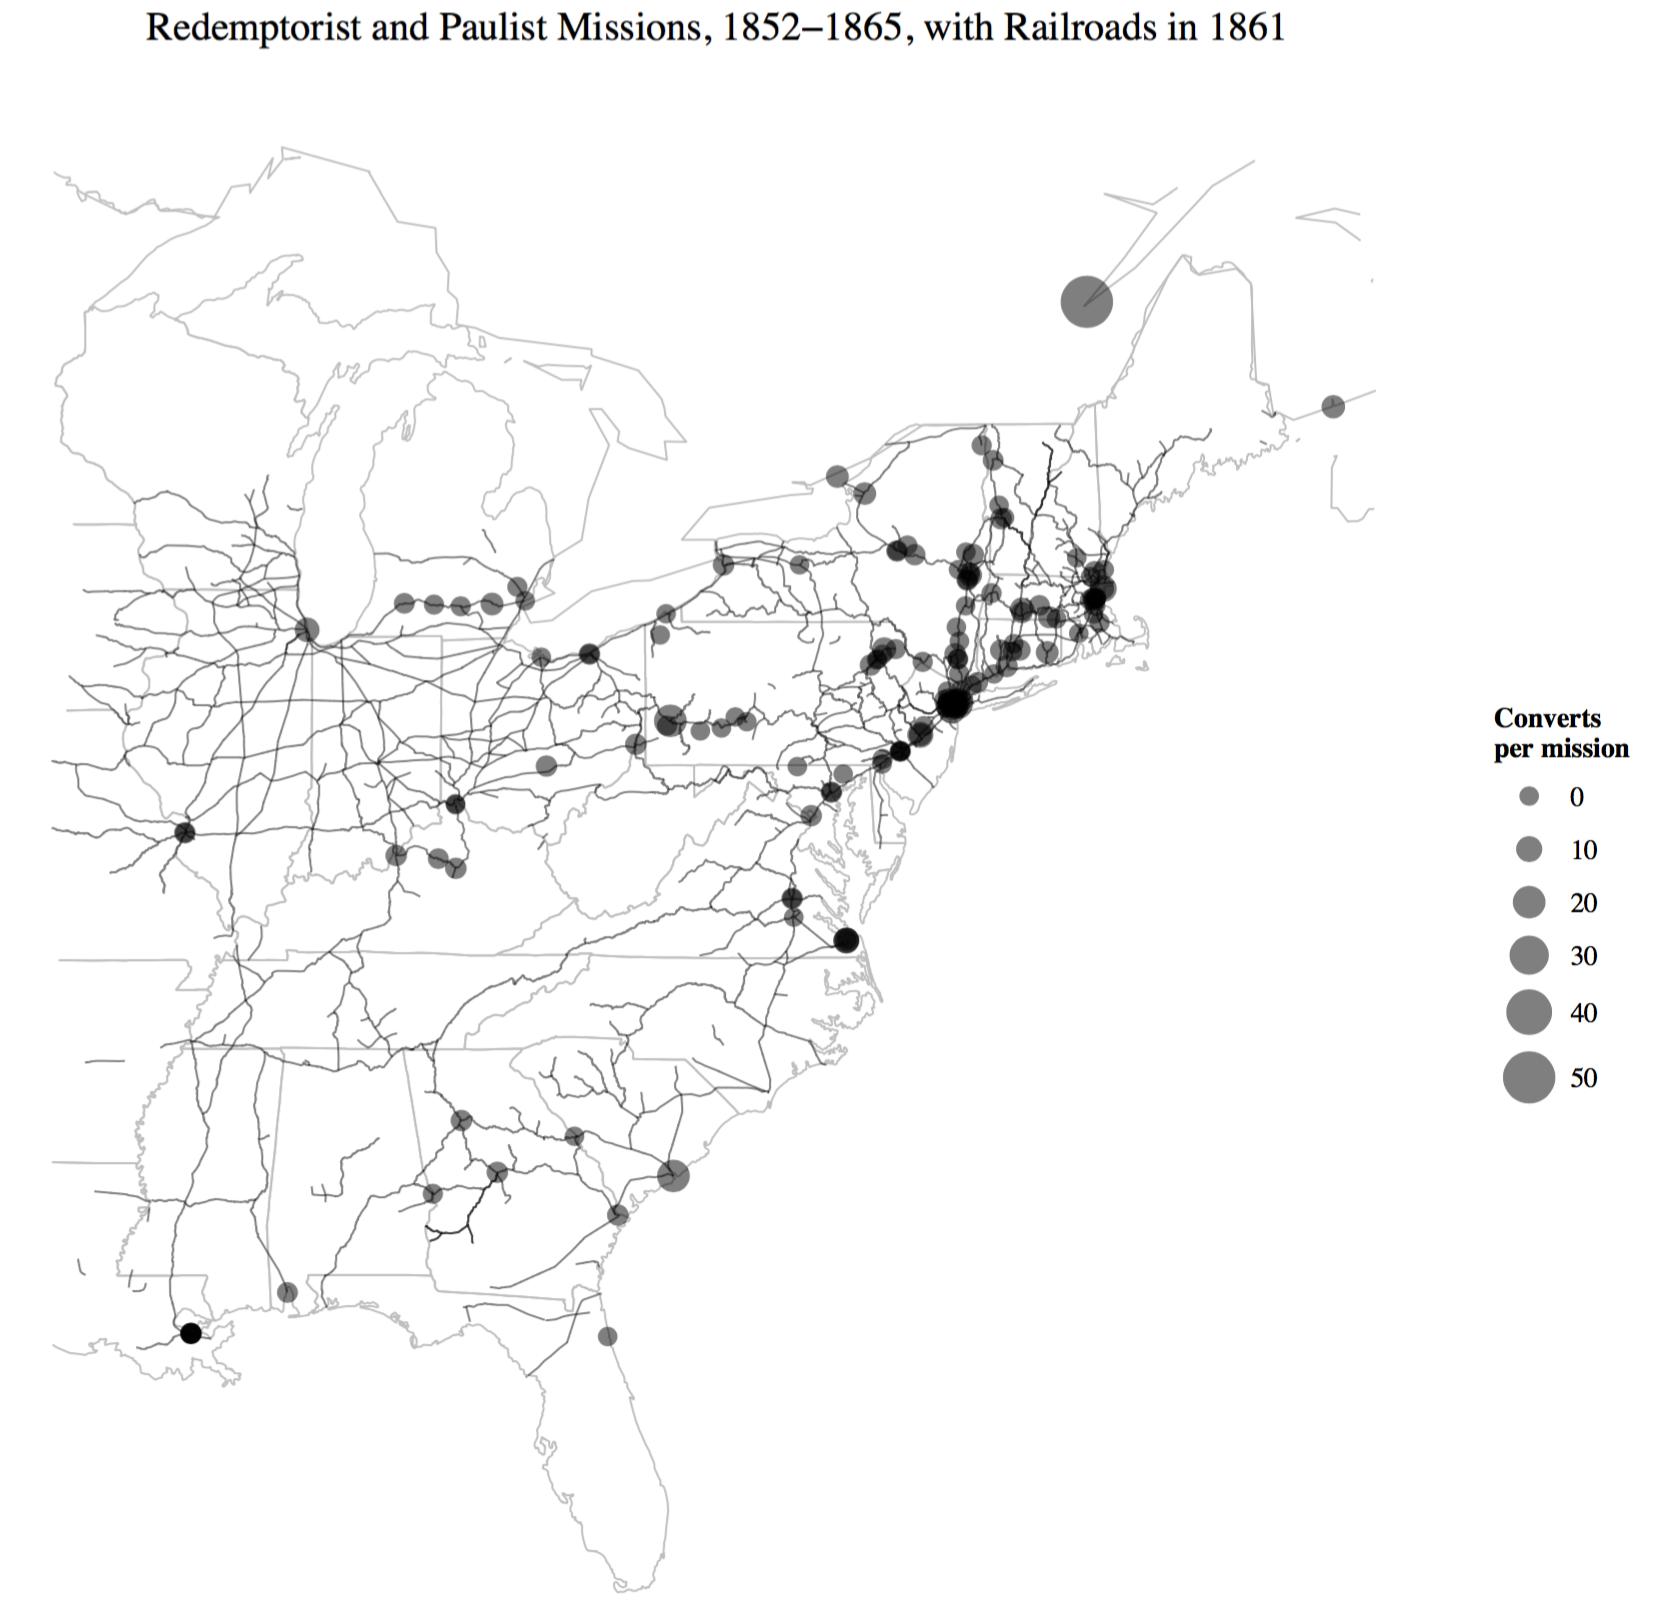 Redemptorist and Paulist missions from 1852 to 1865. Note that there are three kinds of spatial data in this map: the transcribed missions data with city locations, the historical state boundaries, and the railroad network.